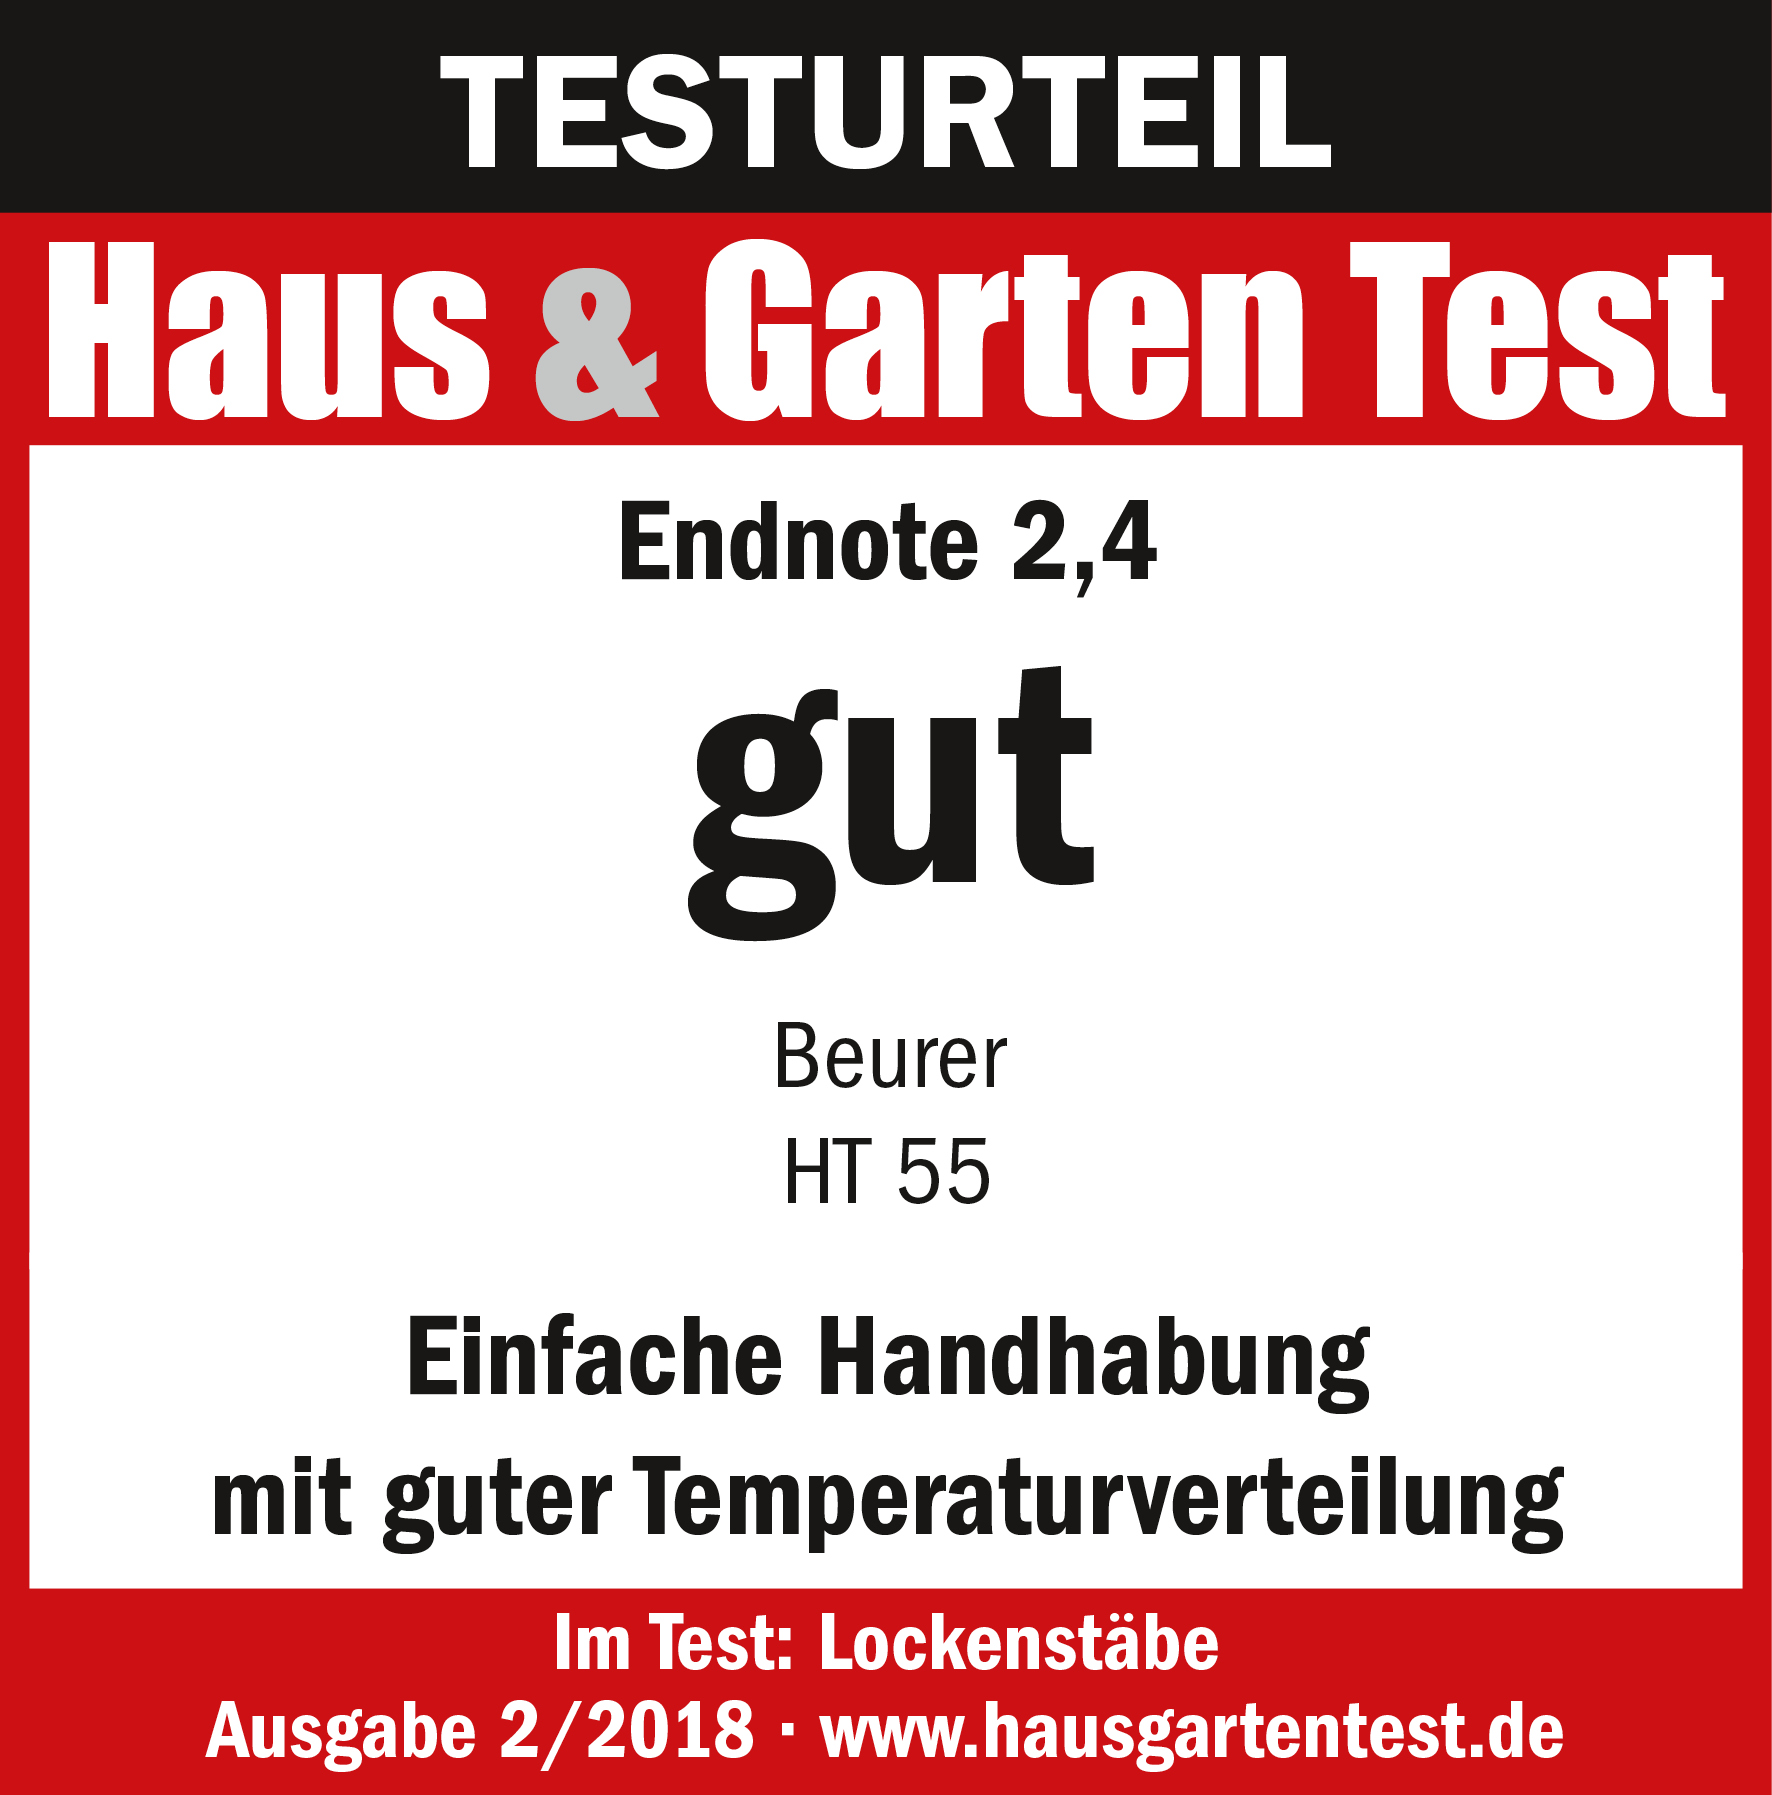 https://www.beurer-shop.de/media/images/attributevalueimages/ht55_haus-garten_gut_0218.png